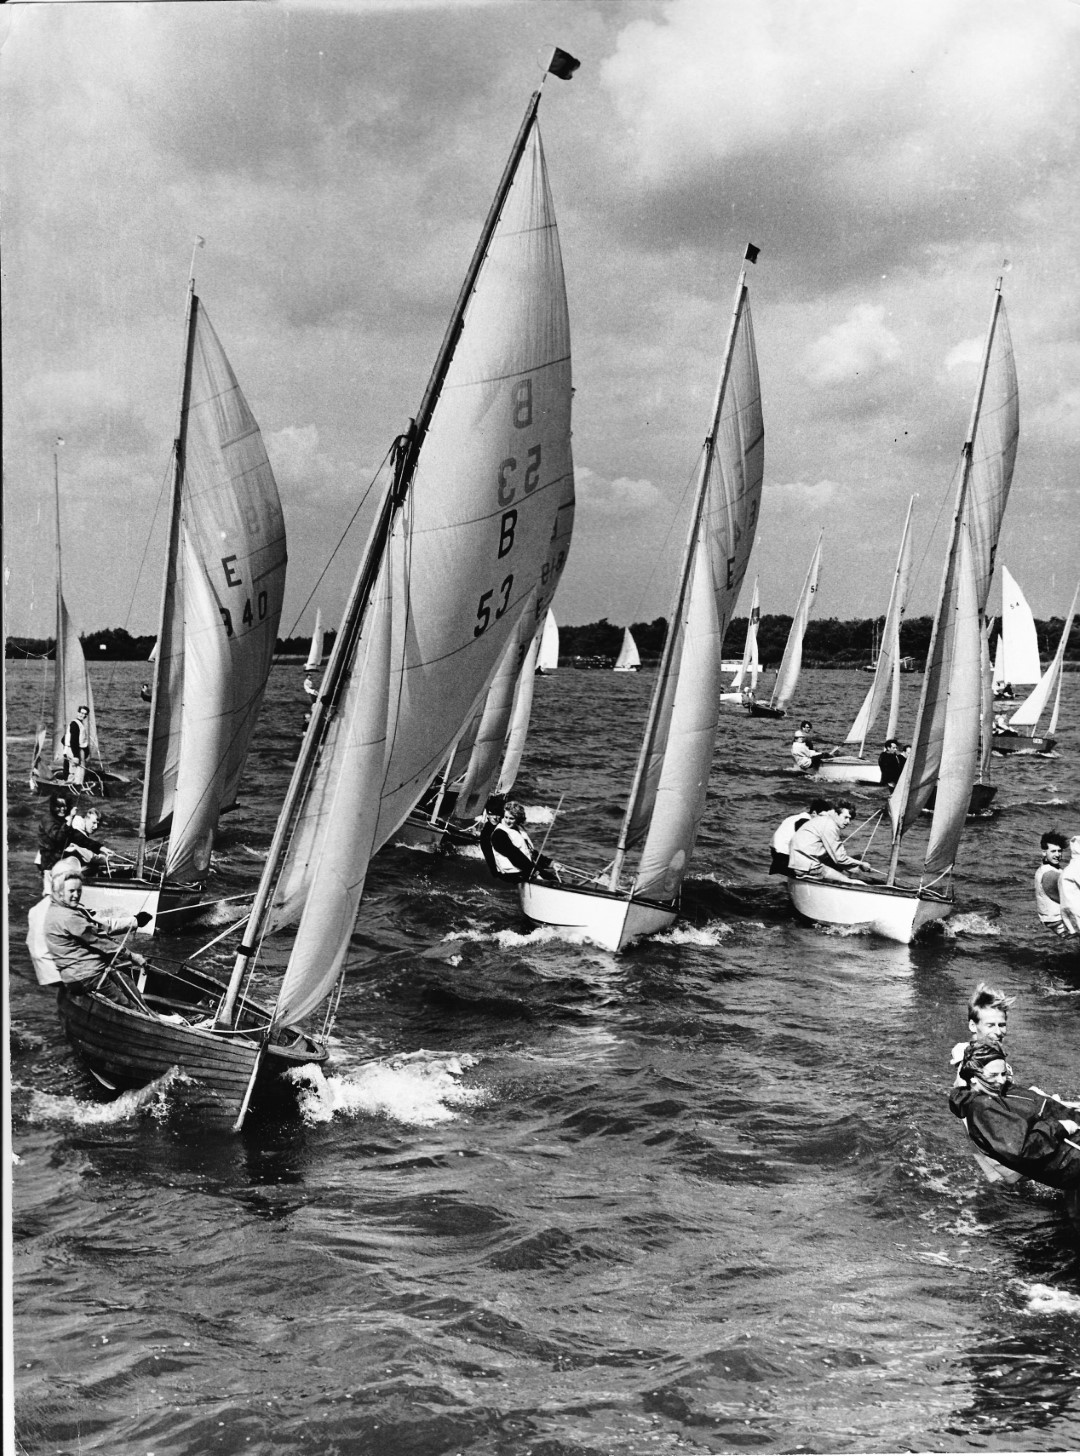 Barton Broad regatta - Sep 1965